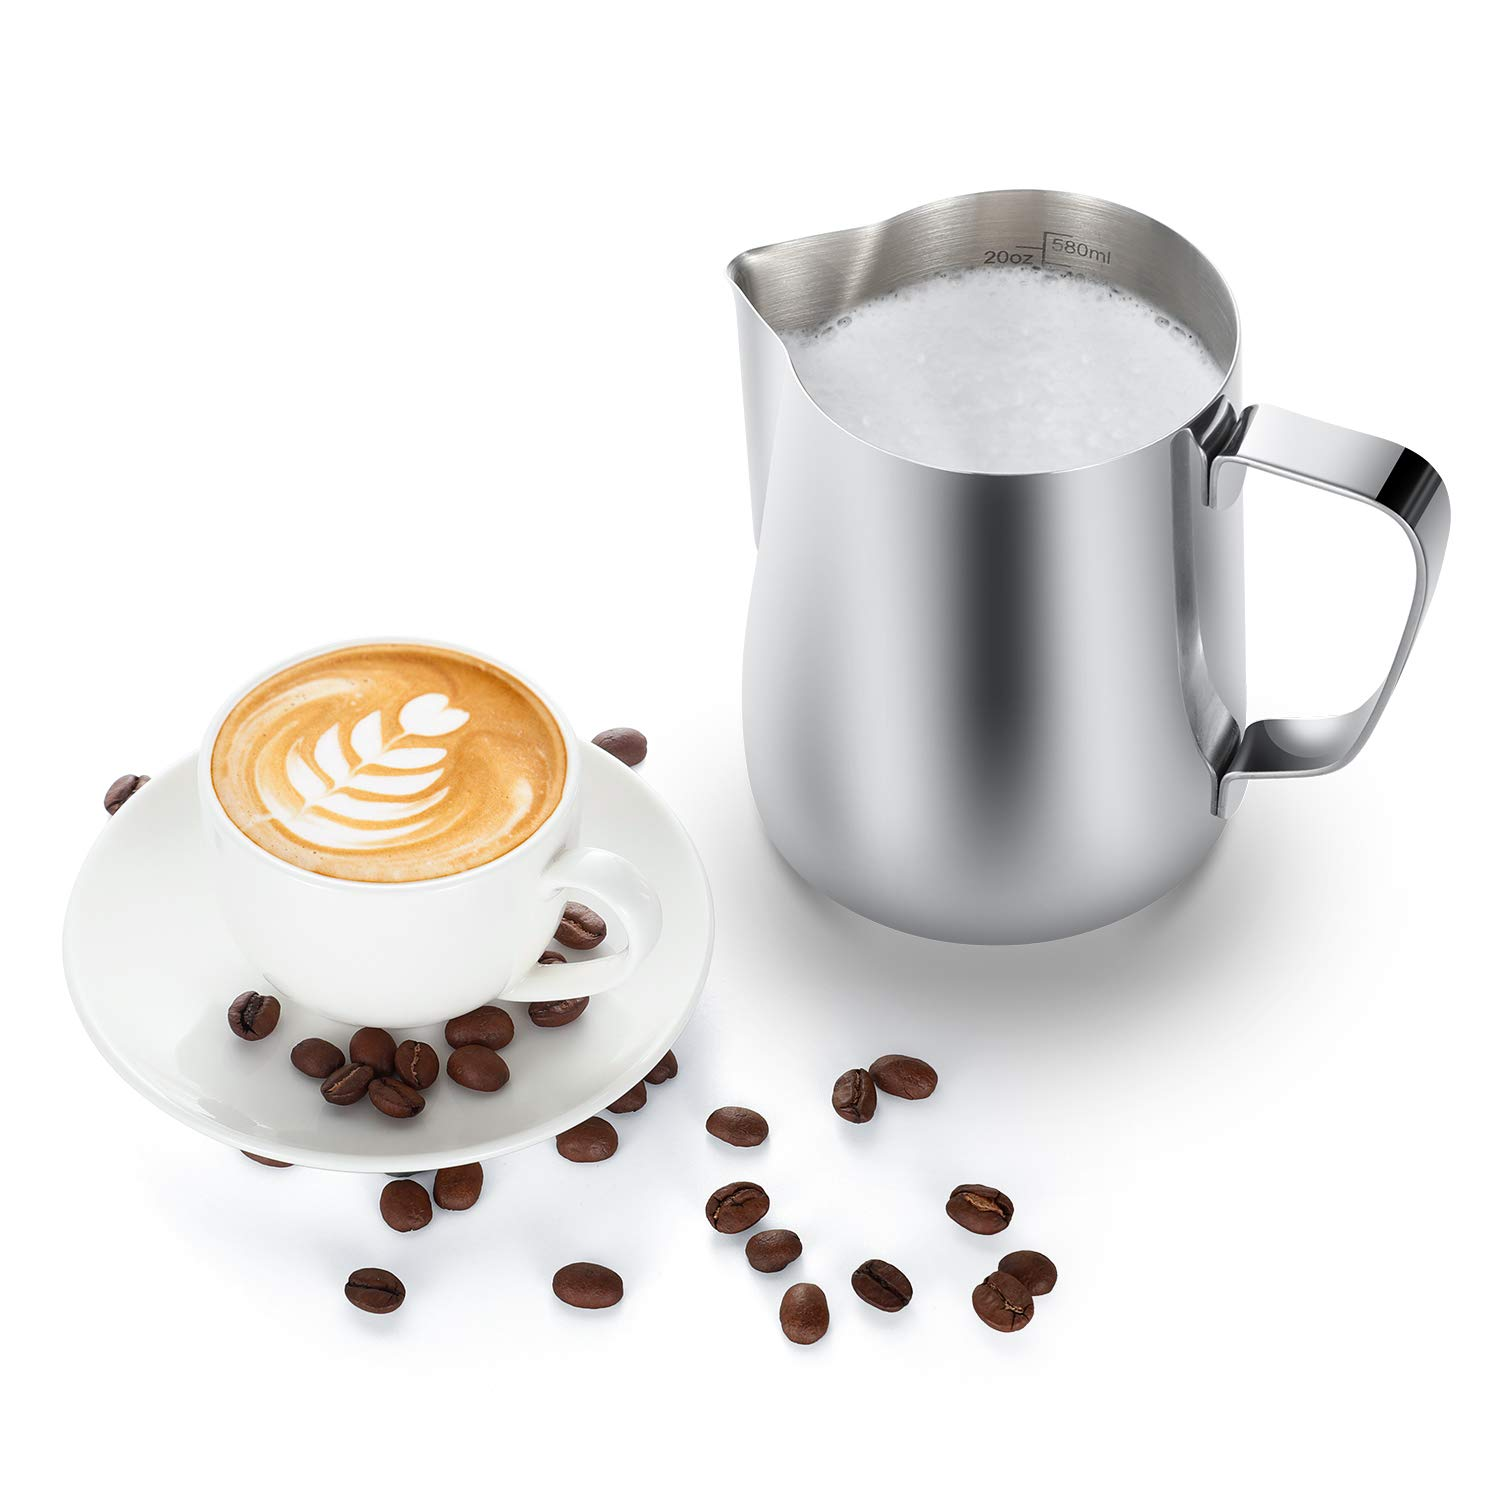 Milk Frothing Pitcher 600ml/350ml/900ml (20oz/12oz/32oz) Steaming Pitchers Stainless Steel Milk/Coffee/Cappuccino/Latte Art Barista Steam Pitchers Milk Jug Cup with Decorating Art Pen, Latte Arts by Adorever (Image #4)